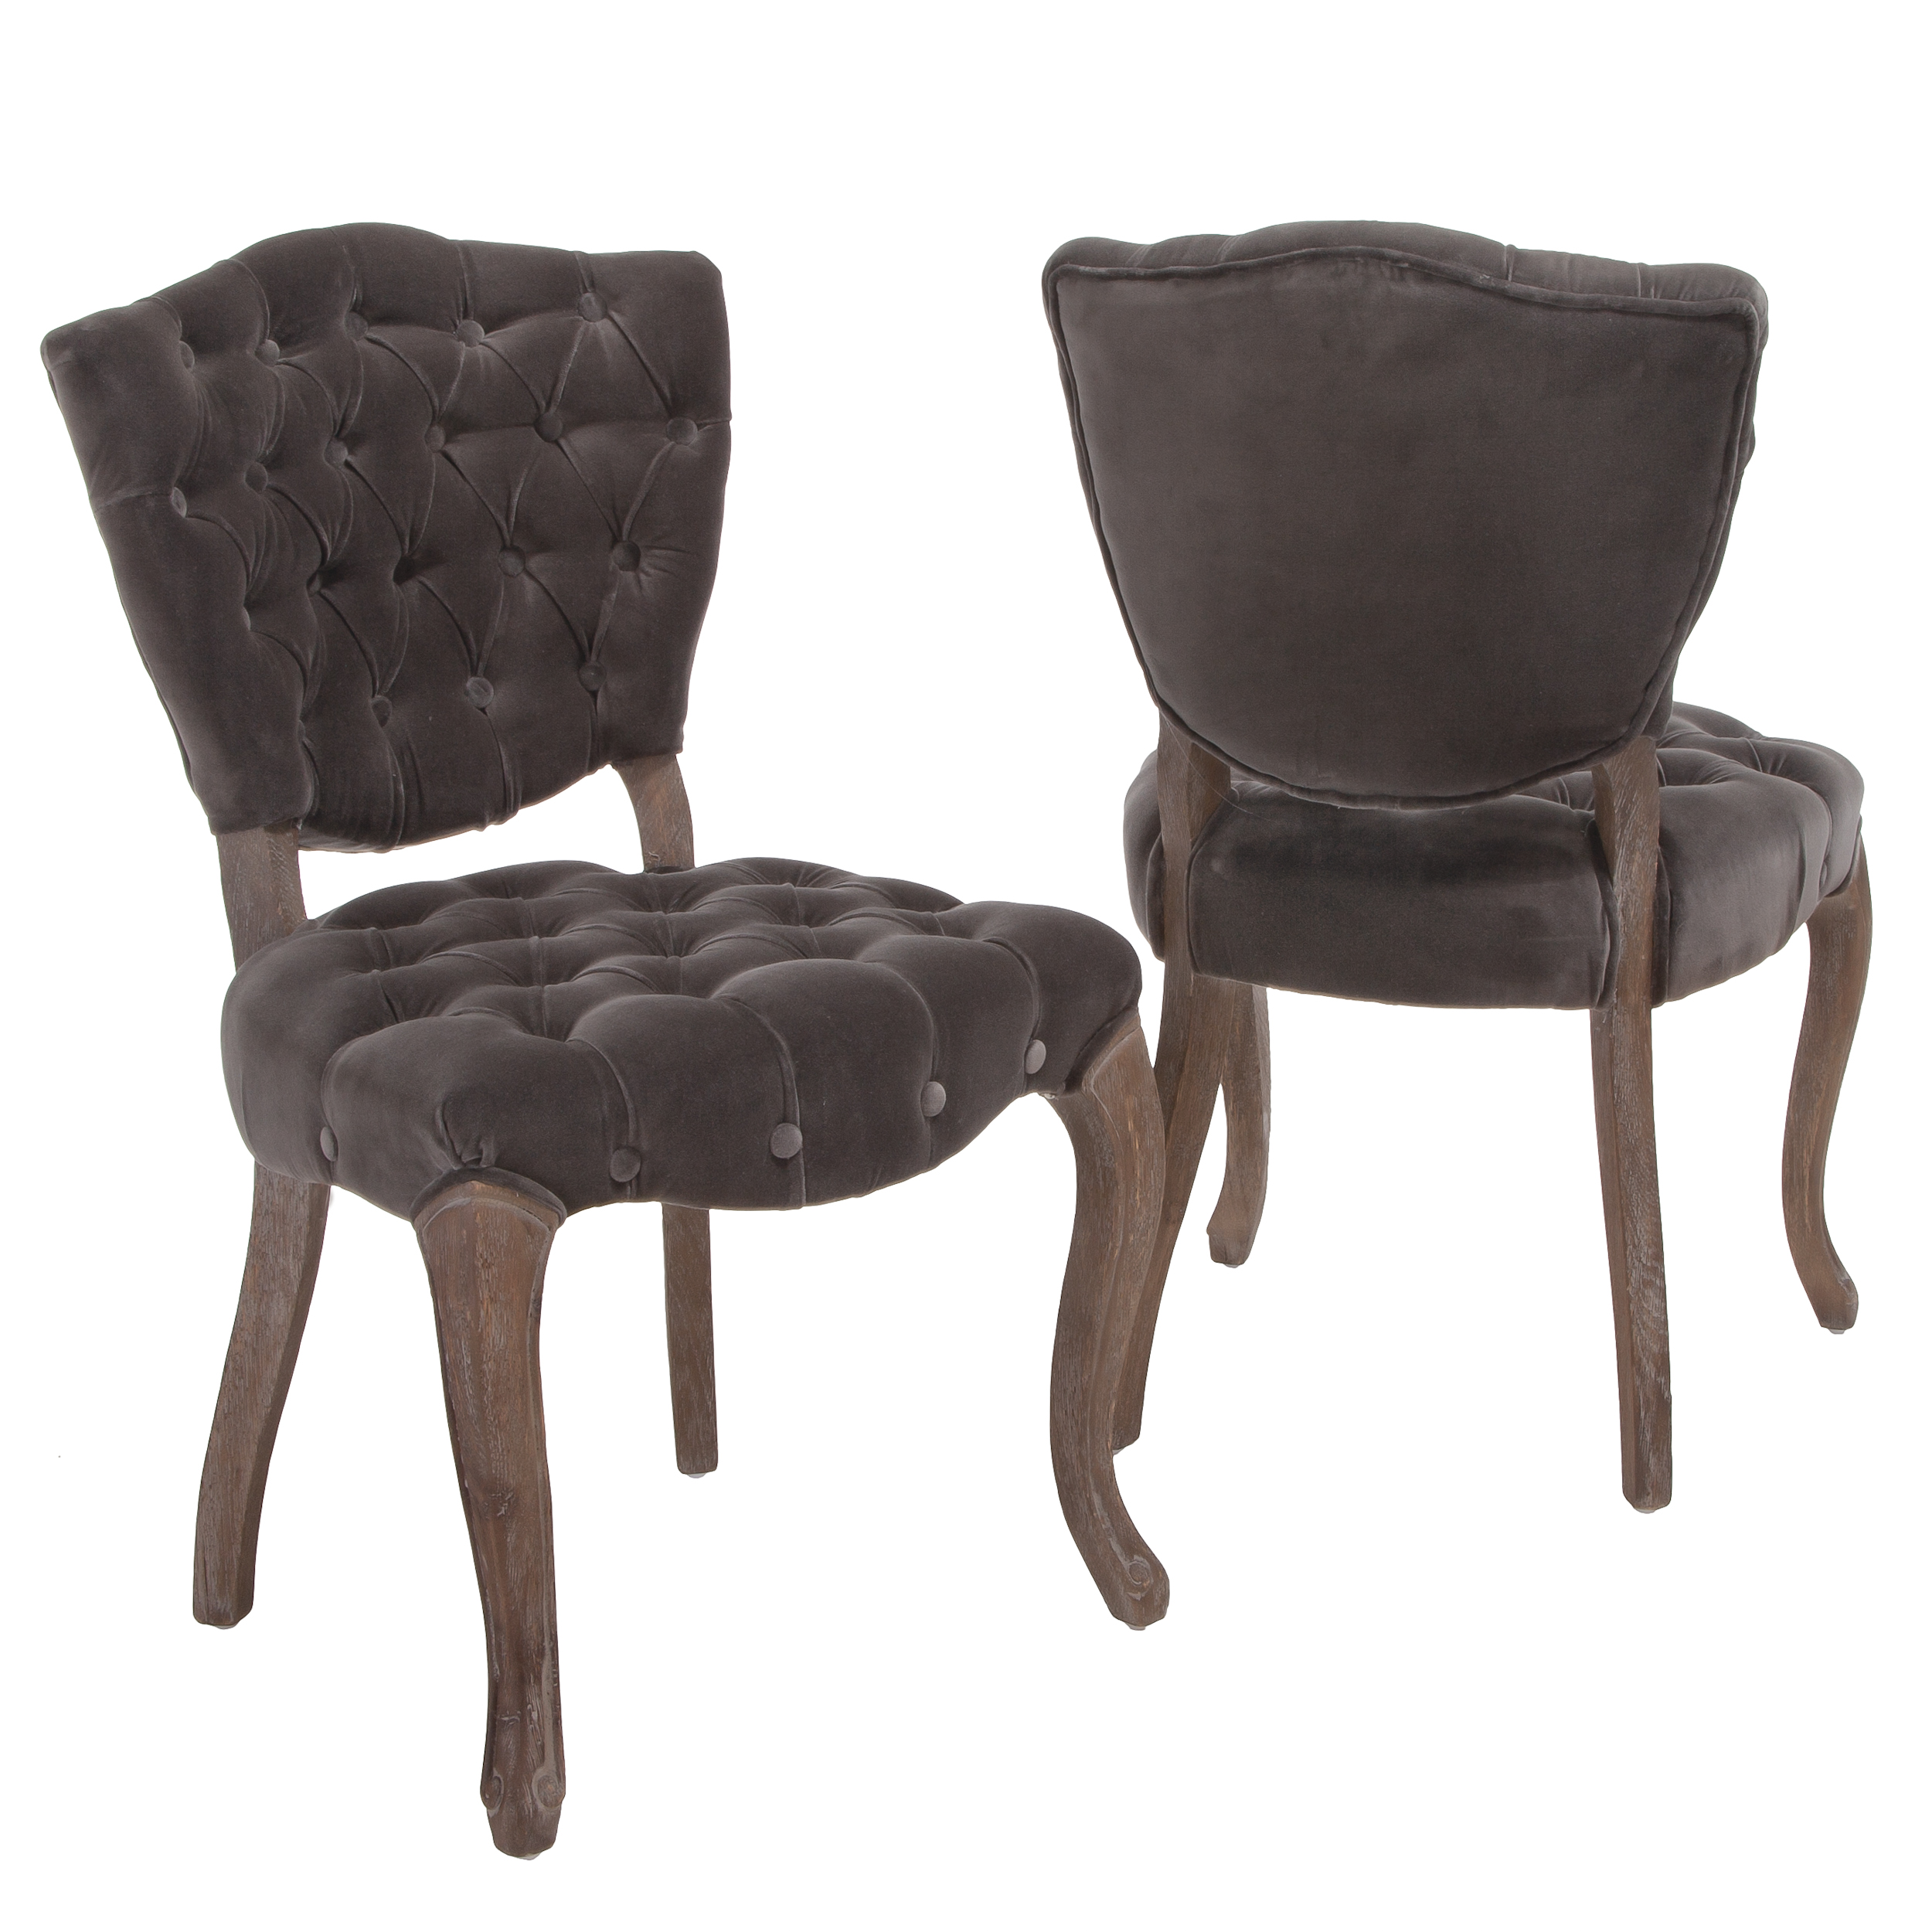 Harrington Tufted Charcoal Fabric Dining Chairs (Set of 2) by GDF Studio